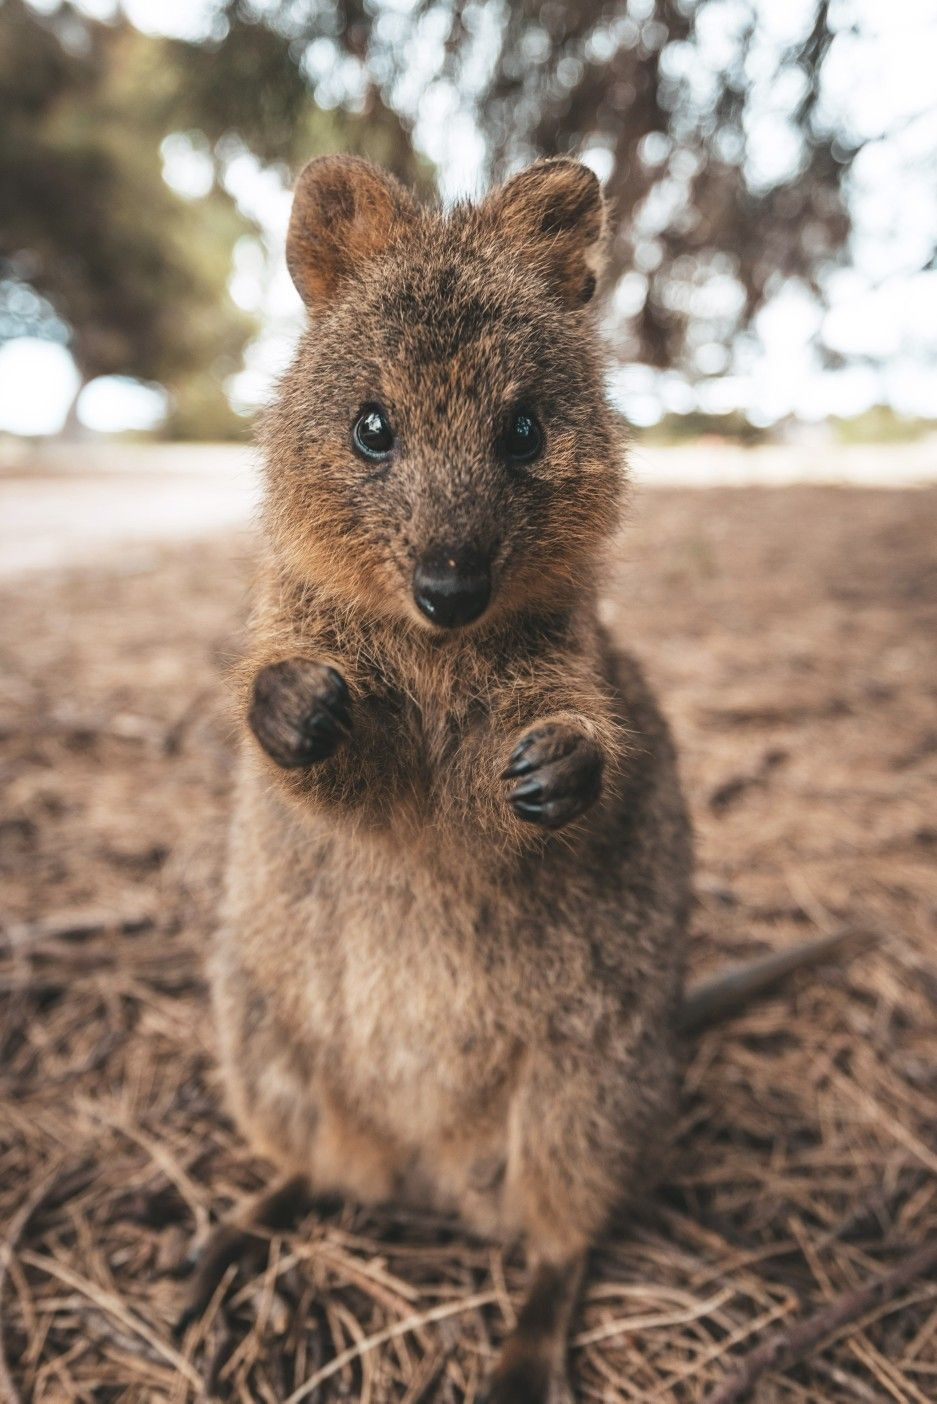 Pin by Tamara Hanson on Quokkas (With images) | Quokka ...